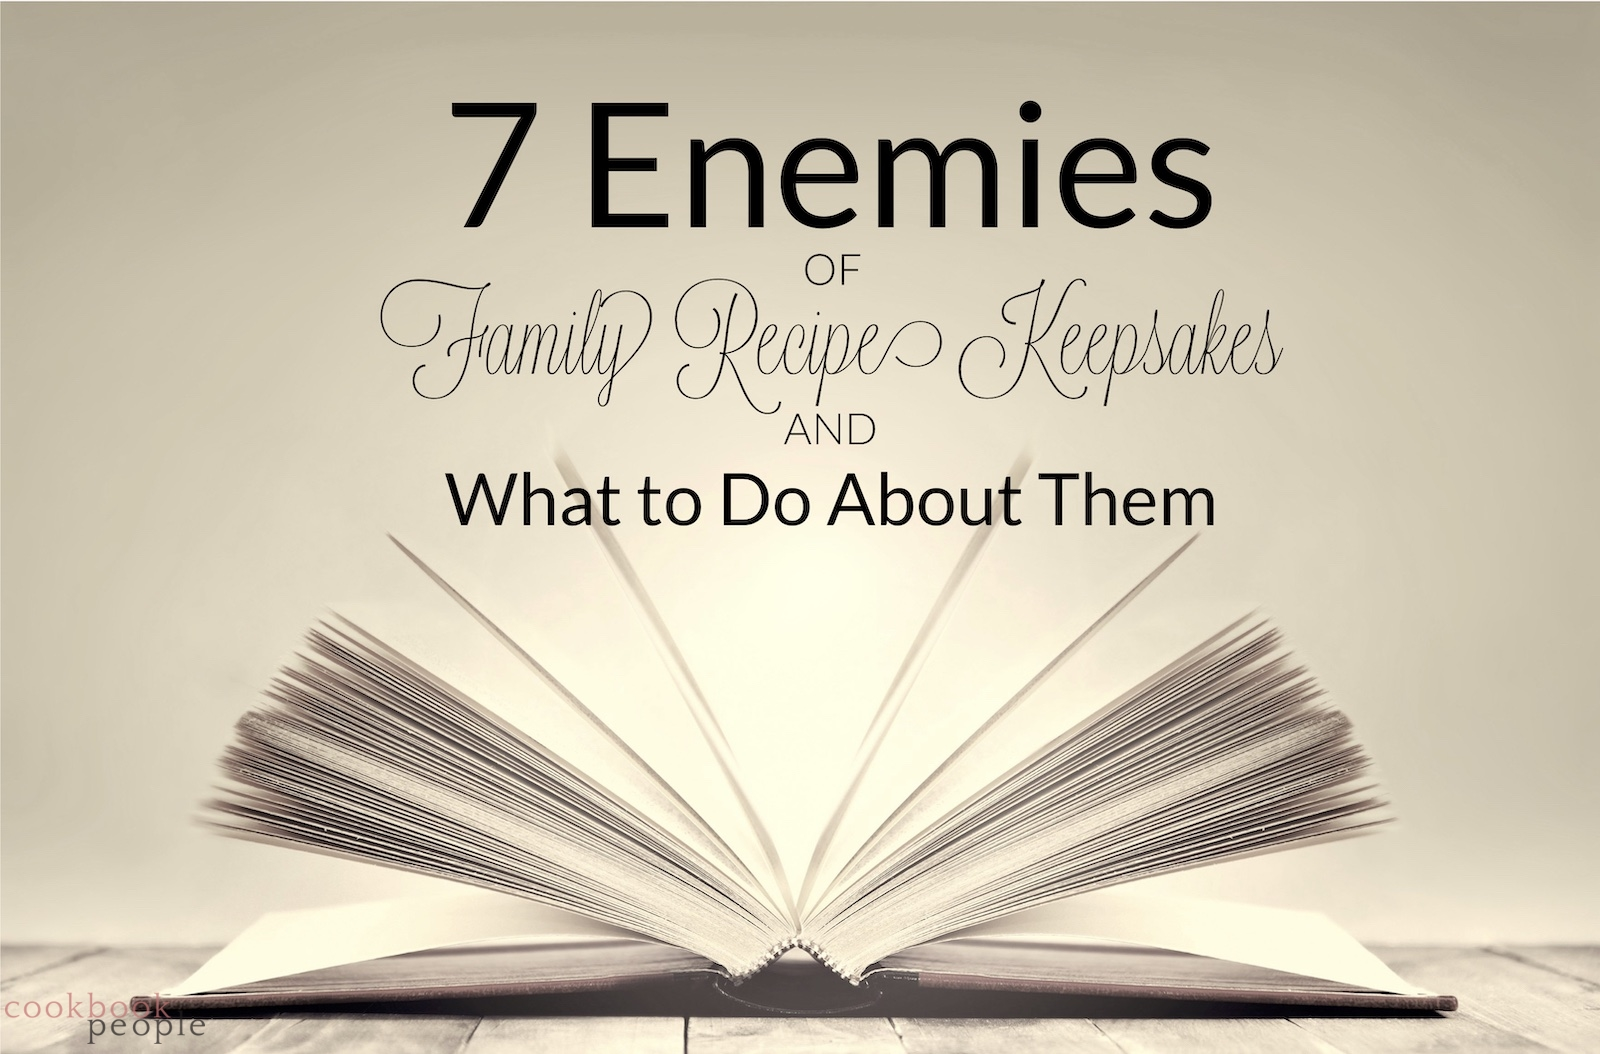 open book on table with title: 7 Enemies of Family Recipe Keepsakes and What to Do About Them